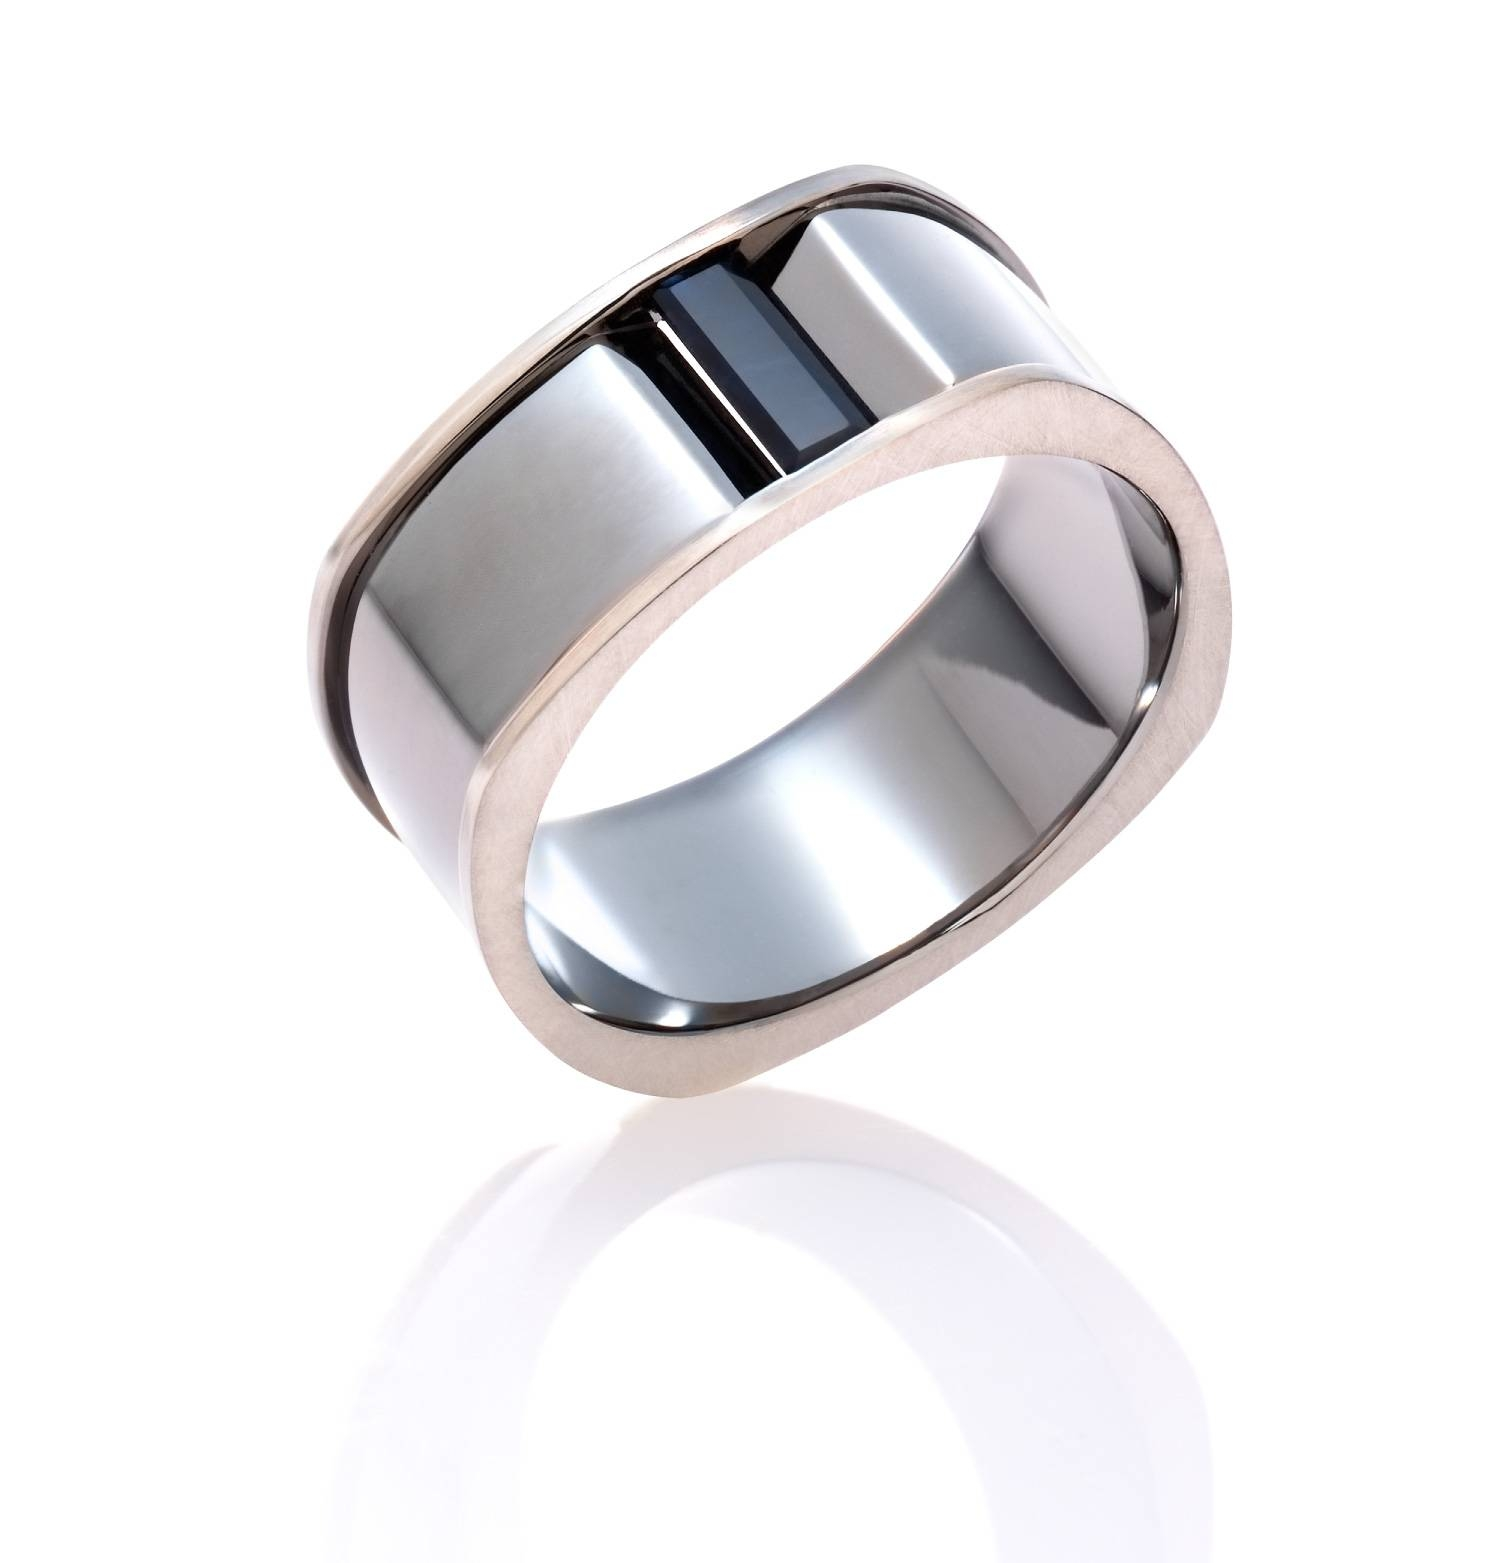 Mens Wedding Bands| Mjs Jewellery – James St Fortitude Valley With Regard To Most Current Rhodium Wedding Bands (View 10 of 15)